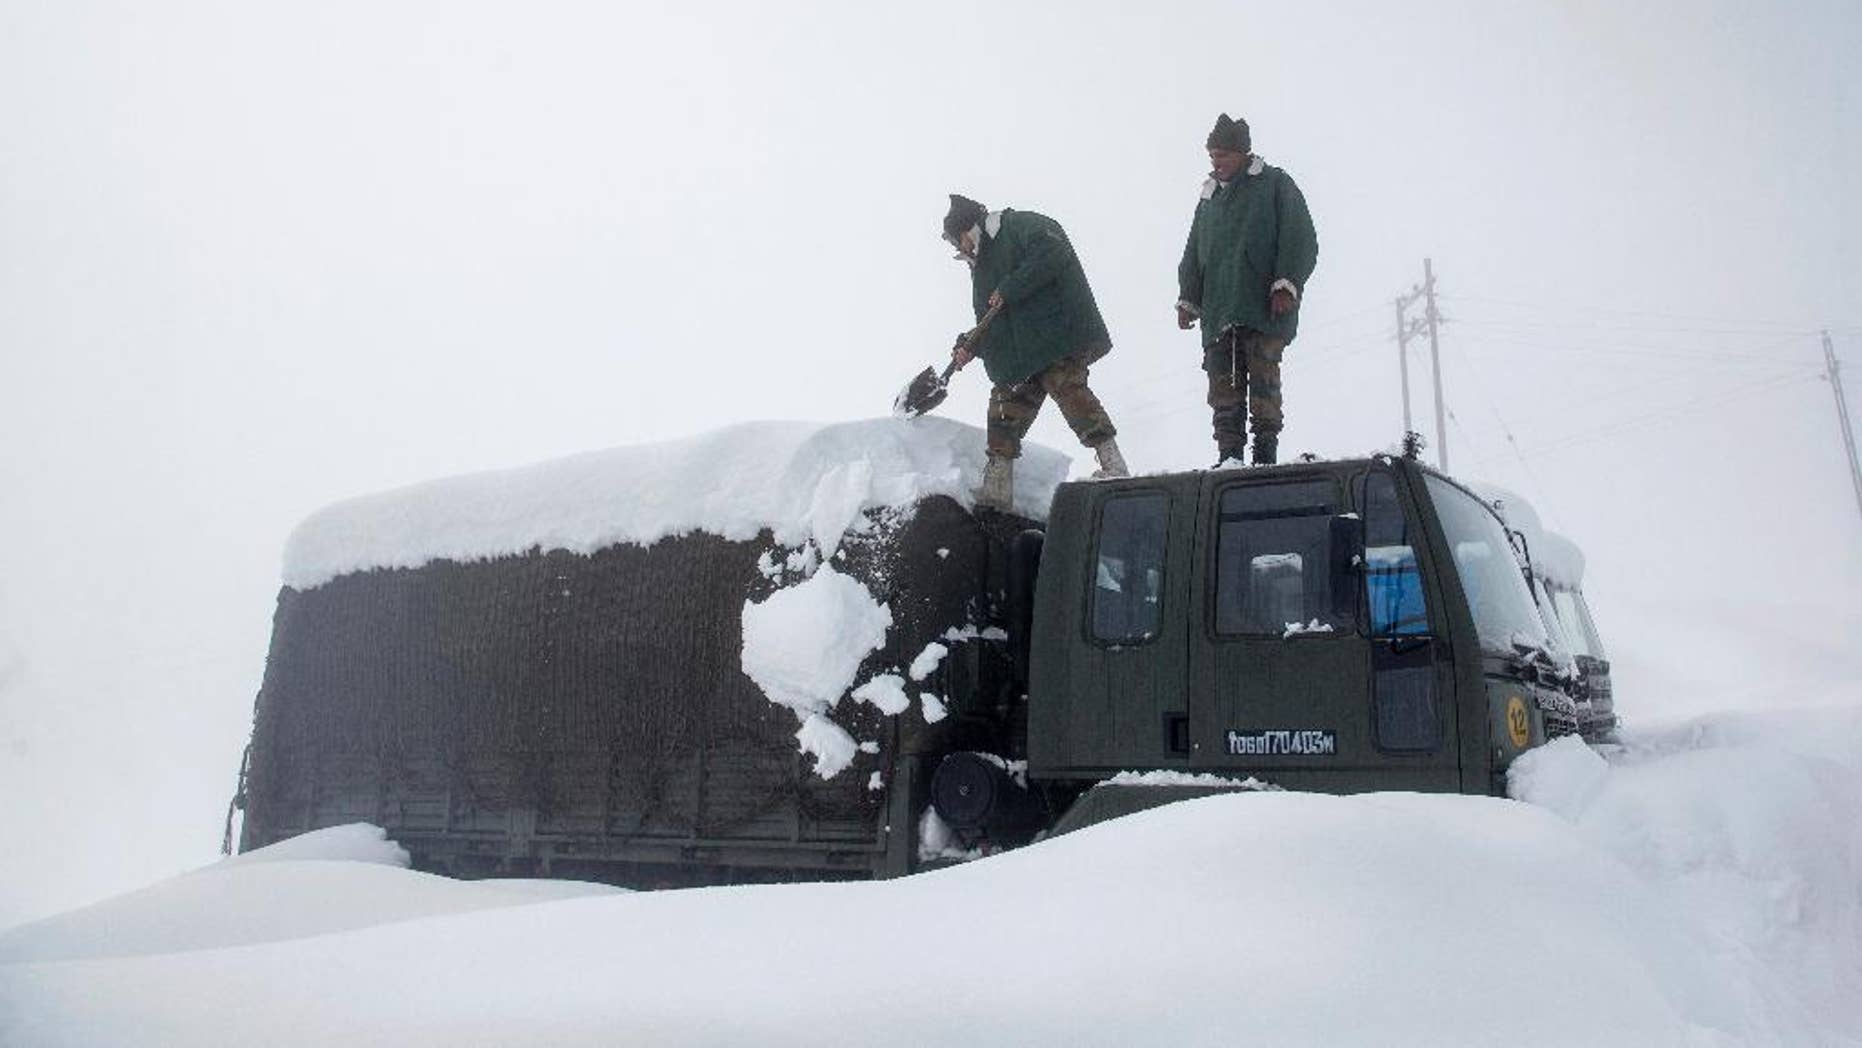 Indian Army soldiers clearing snow from their stranded vehicle near a base camp in Gulmarg last week.